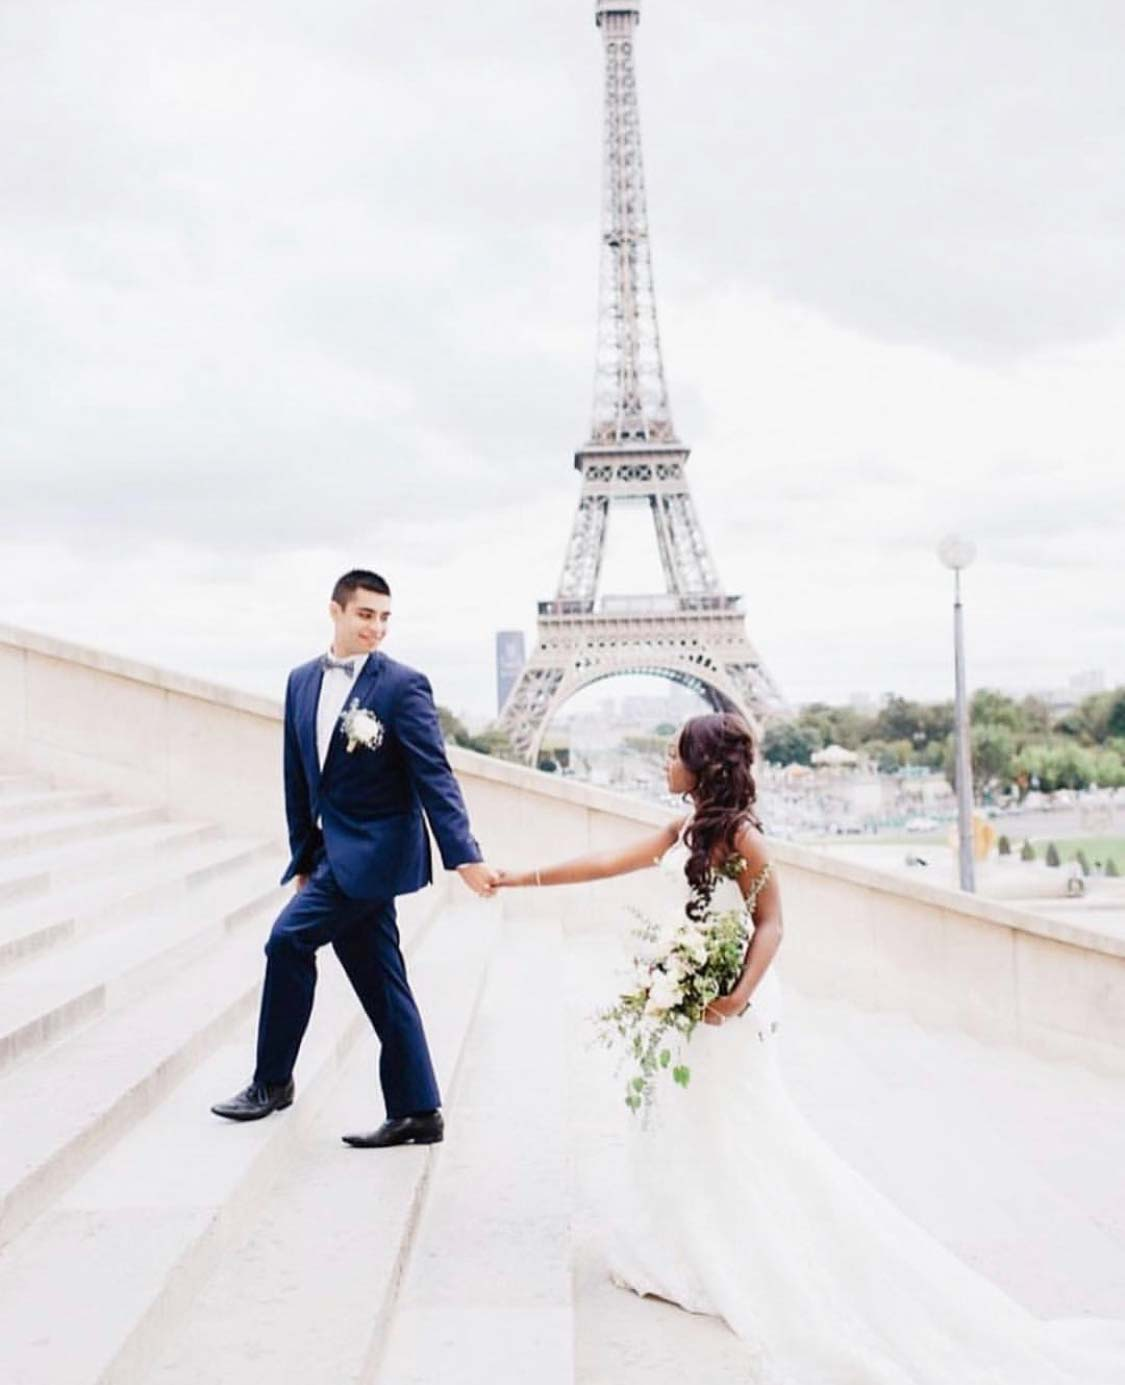 5 Hours Coverage For Wedding Elopement Ceremony - Fine Art Photographer in Paris